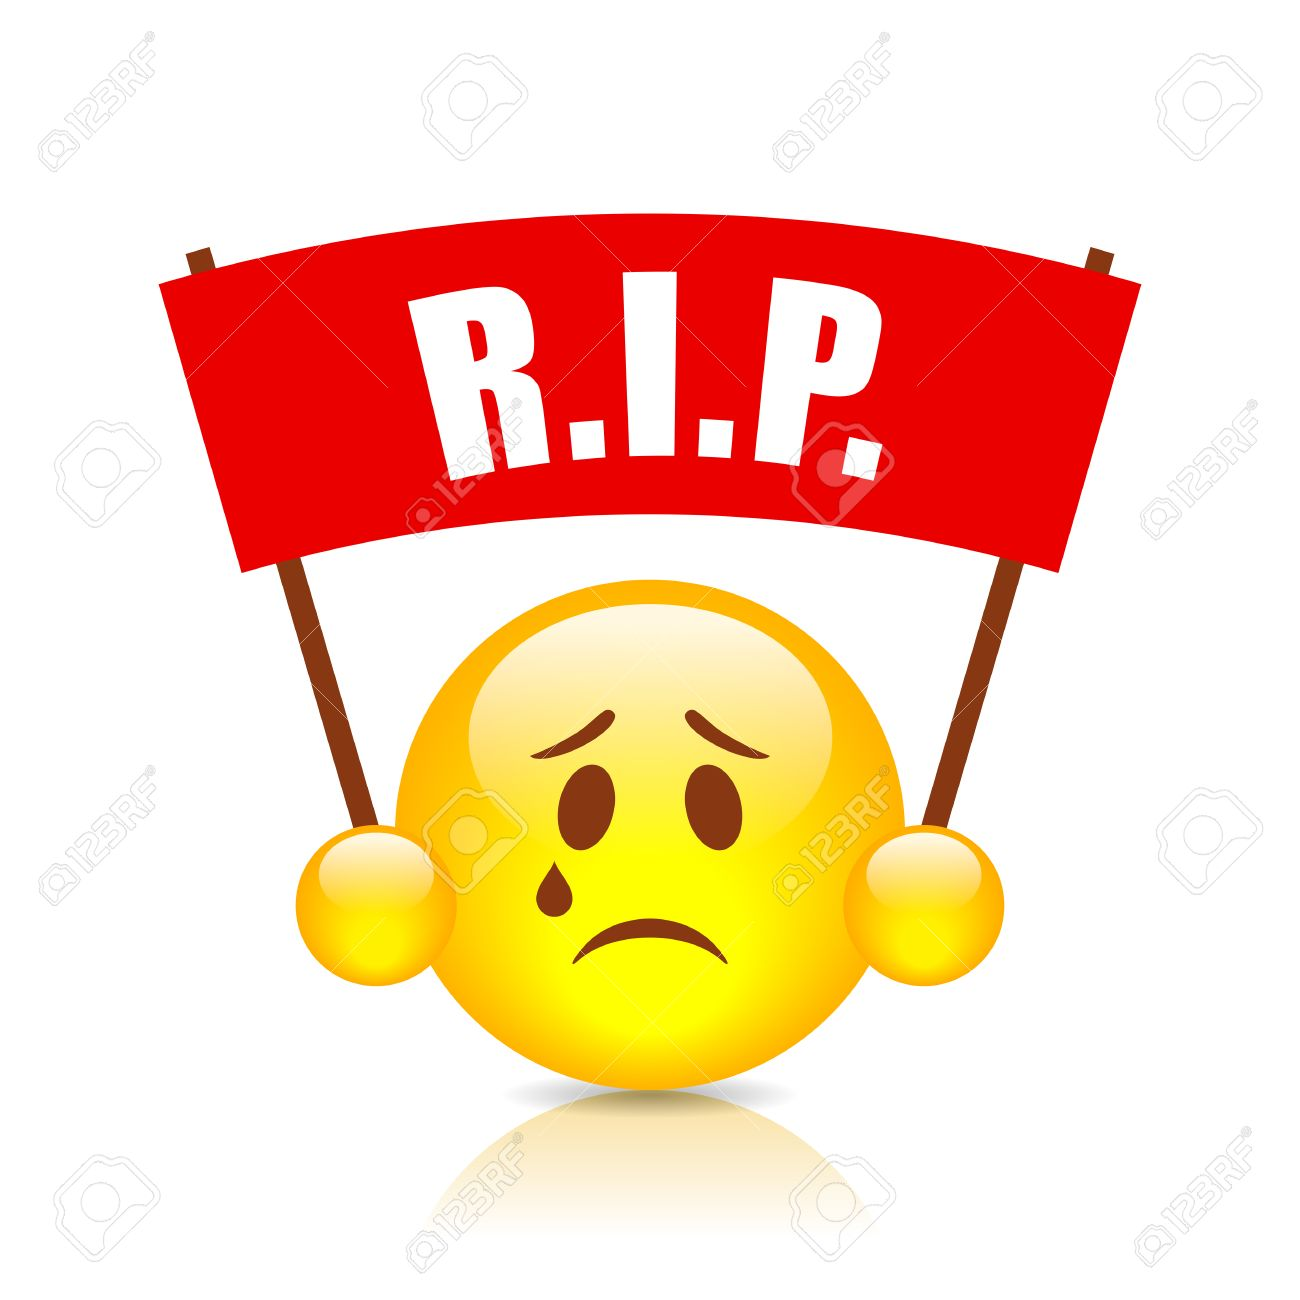 https://previews.123rf.com/images/arcady31/arcady311703/arcady31170300136/73972537-rip-sad-vector-emoticon.jpg